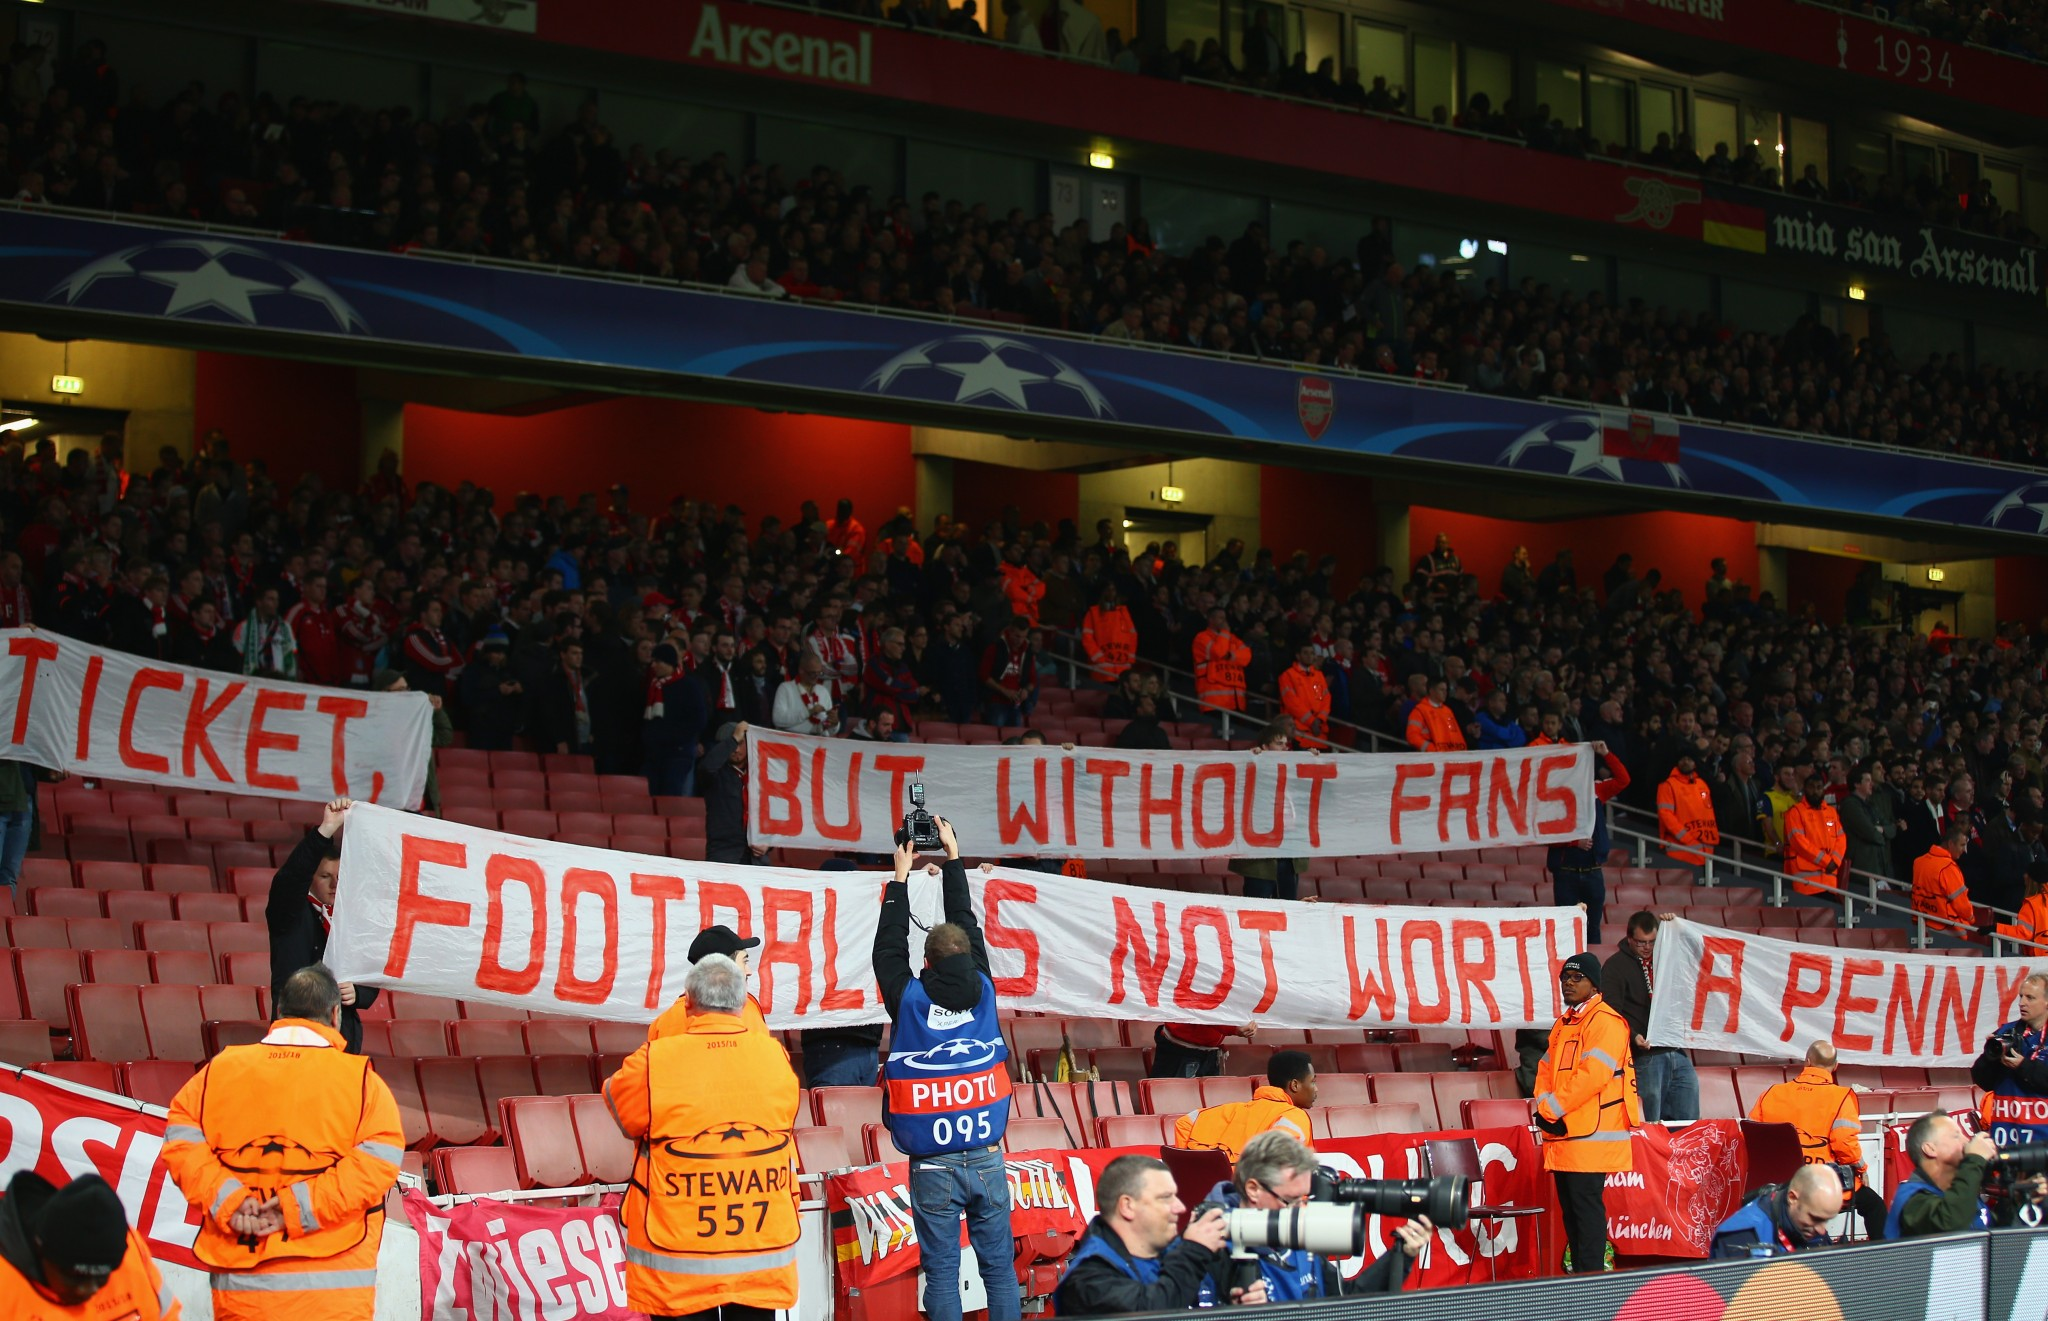 Bayern Munich fans protest at price of tickets in the Emirates Stadium